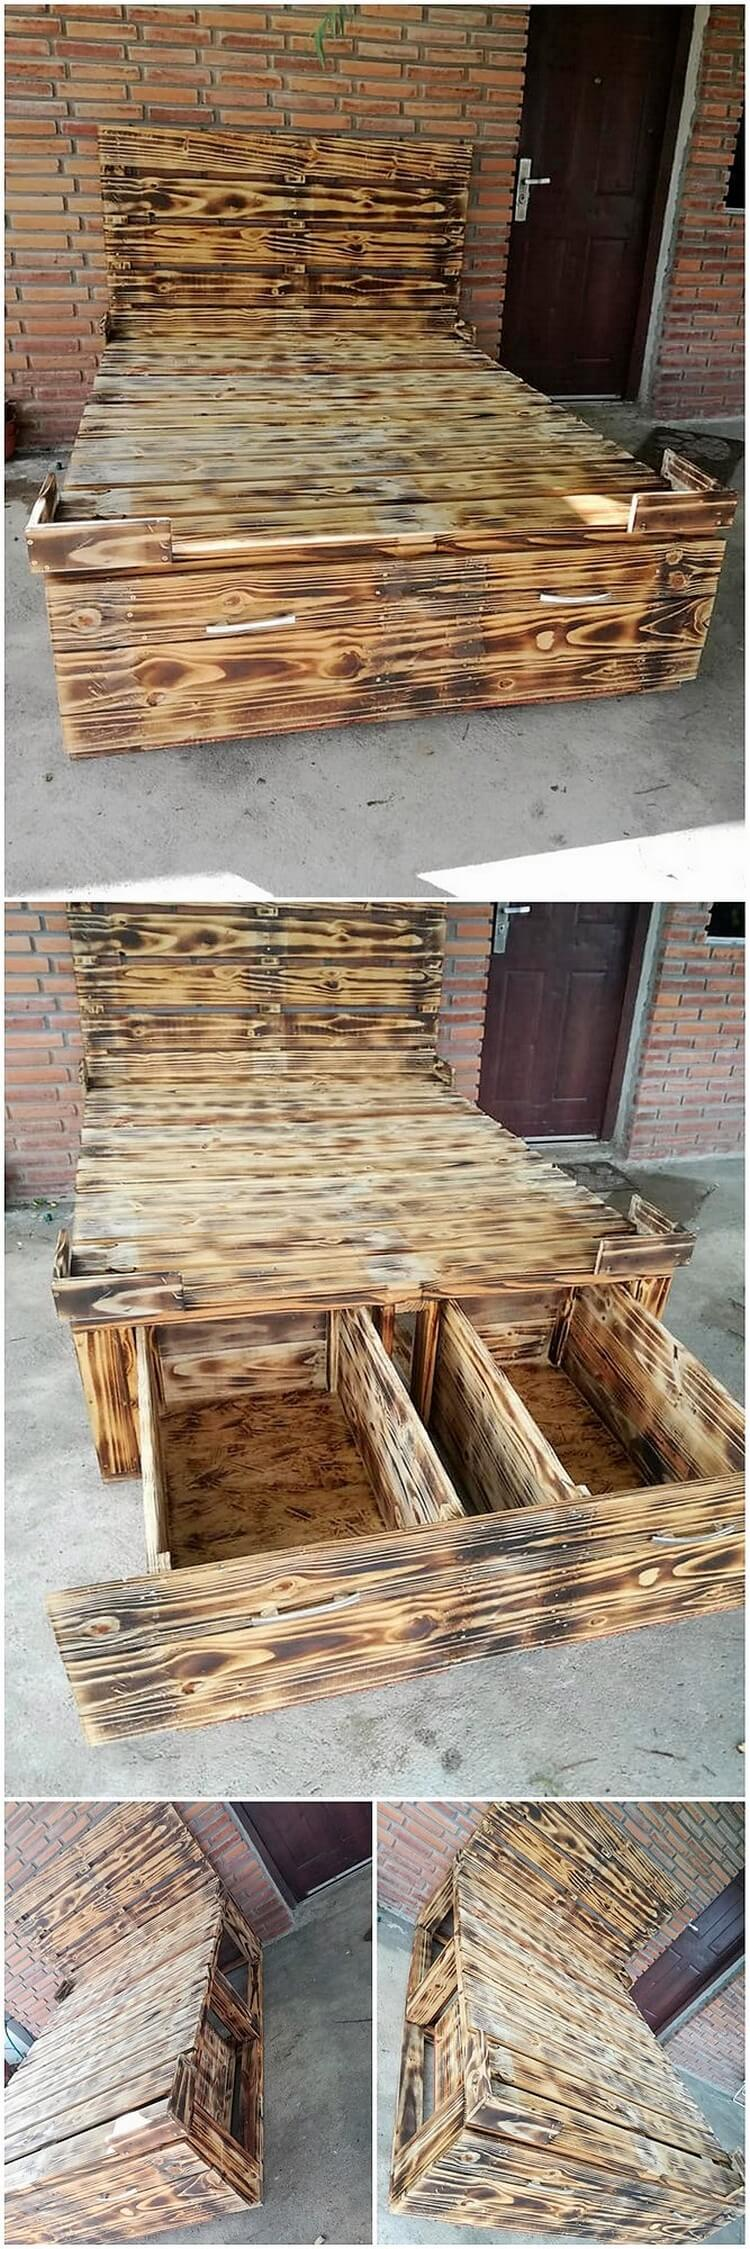 Pallet Bed with Drawer